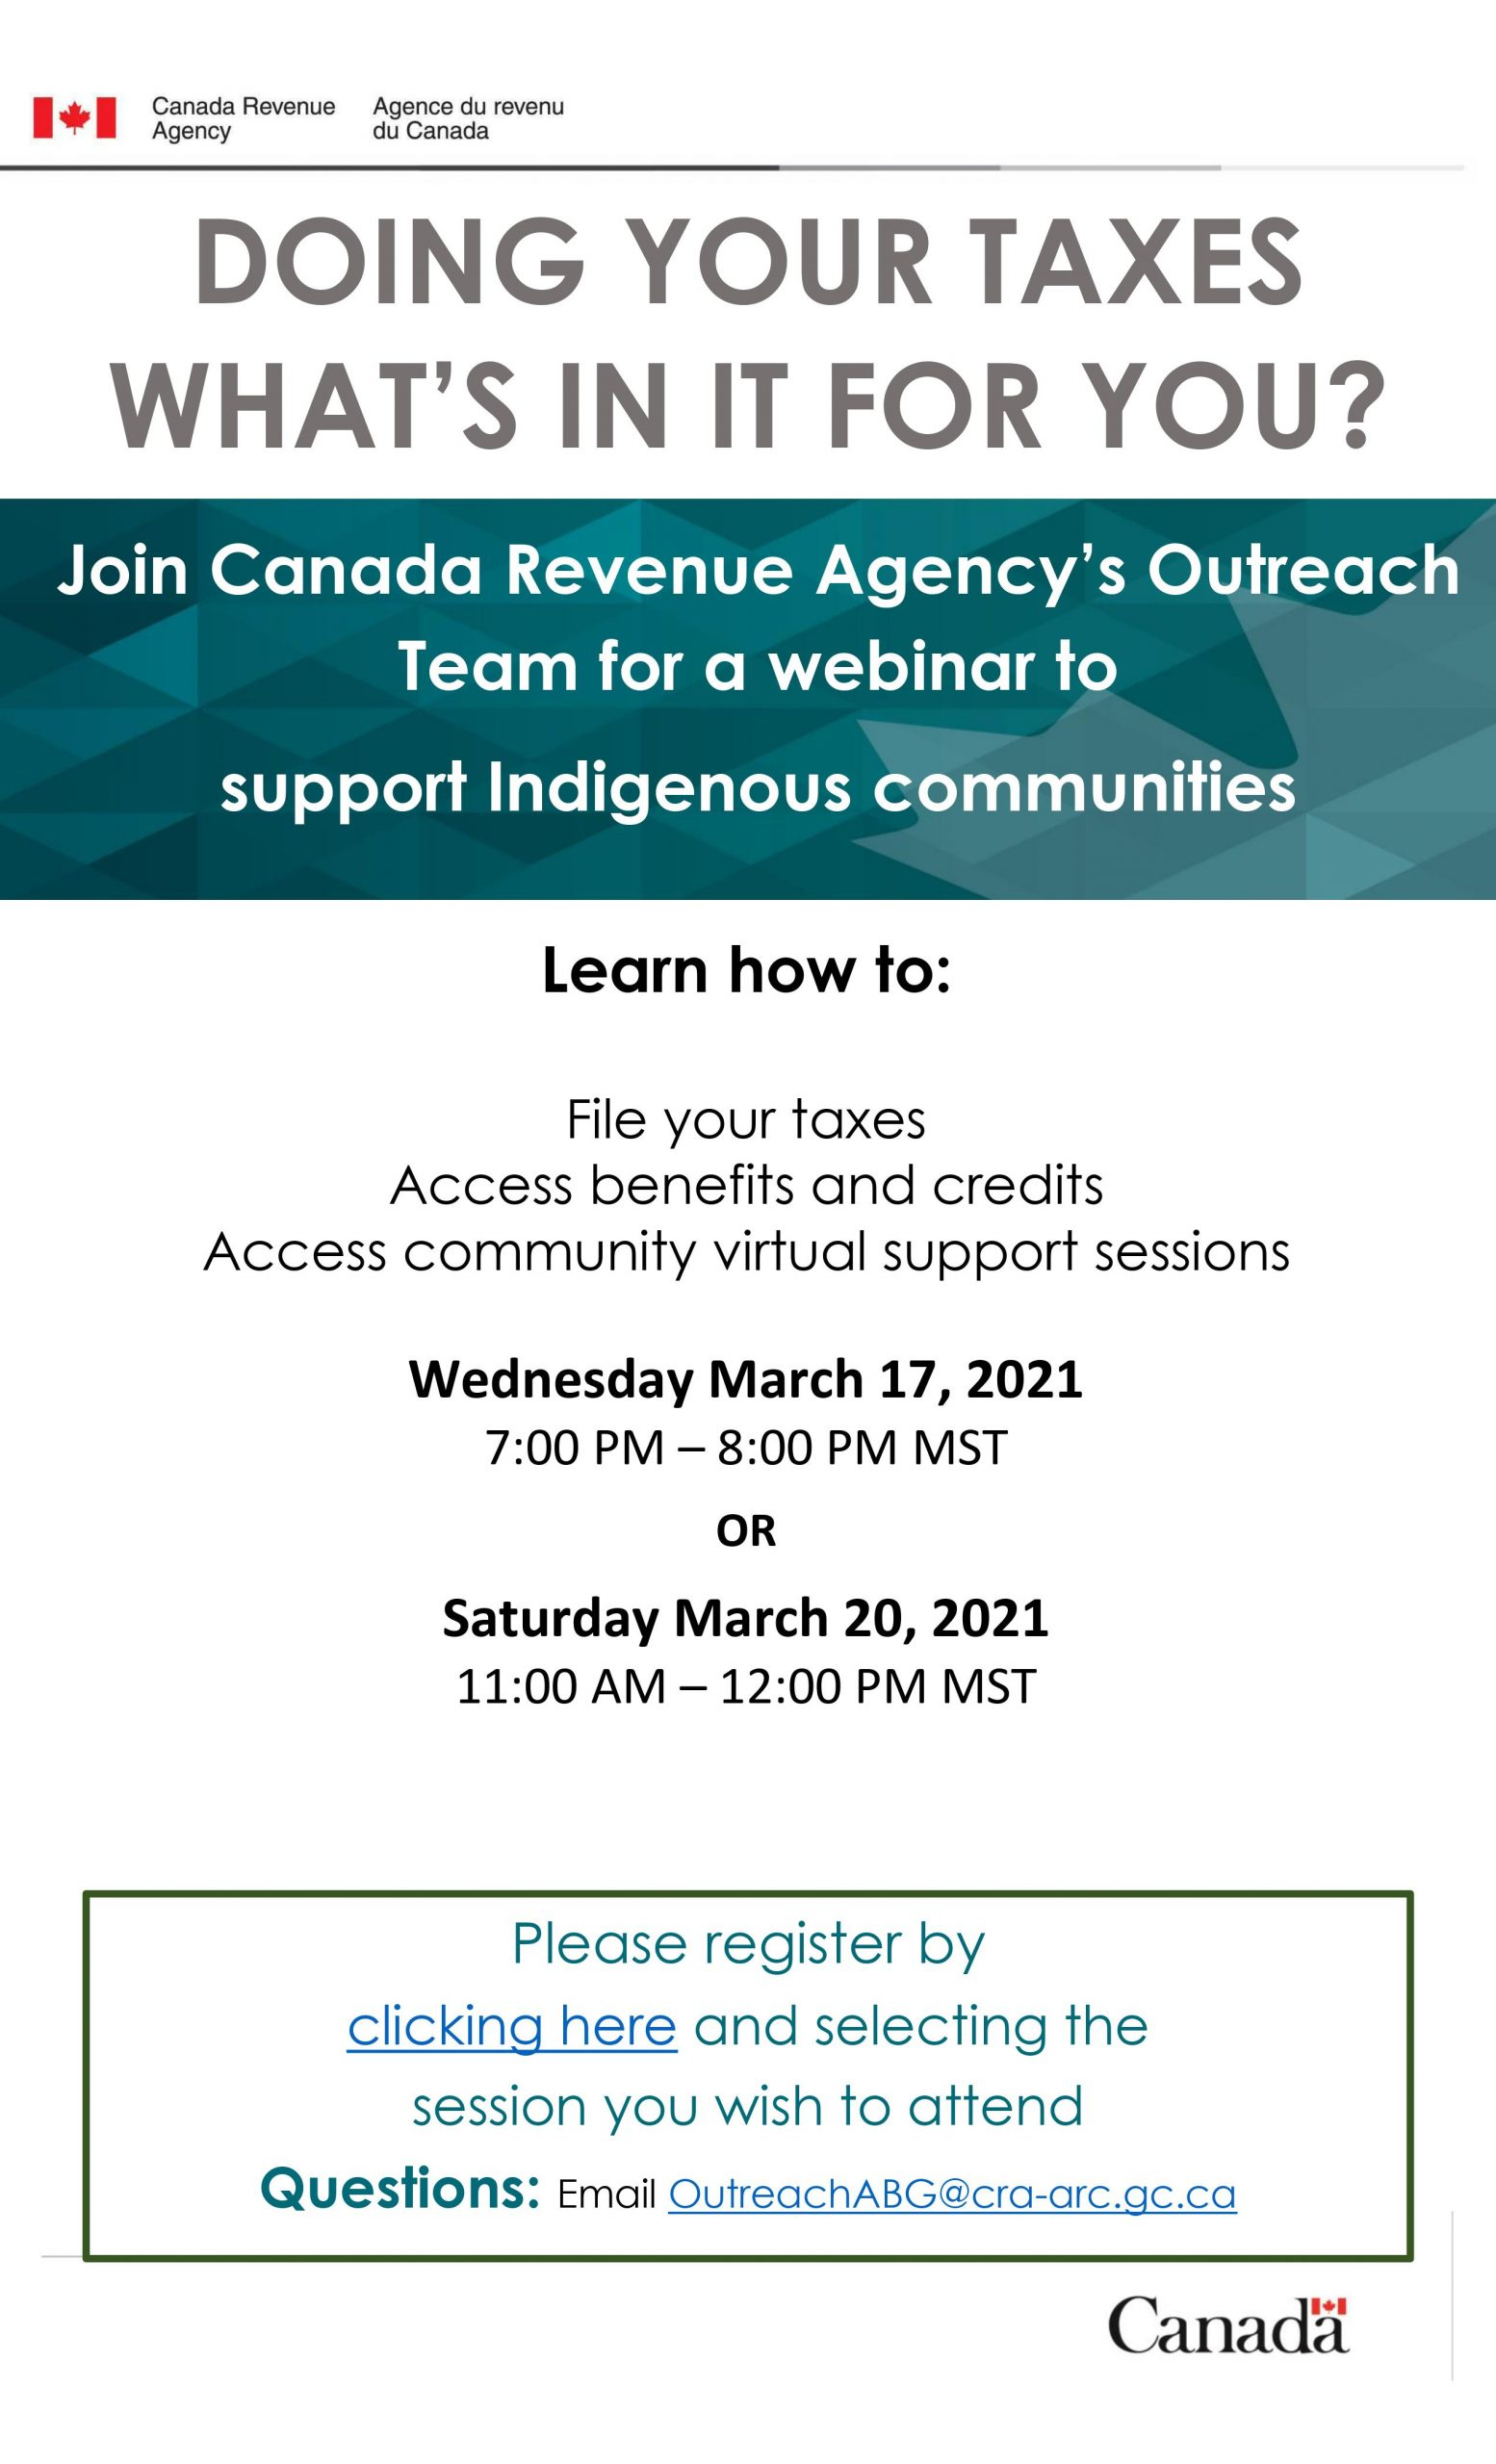 Canada Revenue Agency | Outreach Support for Indigenous Communities